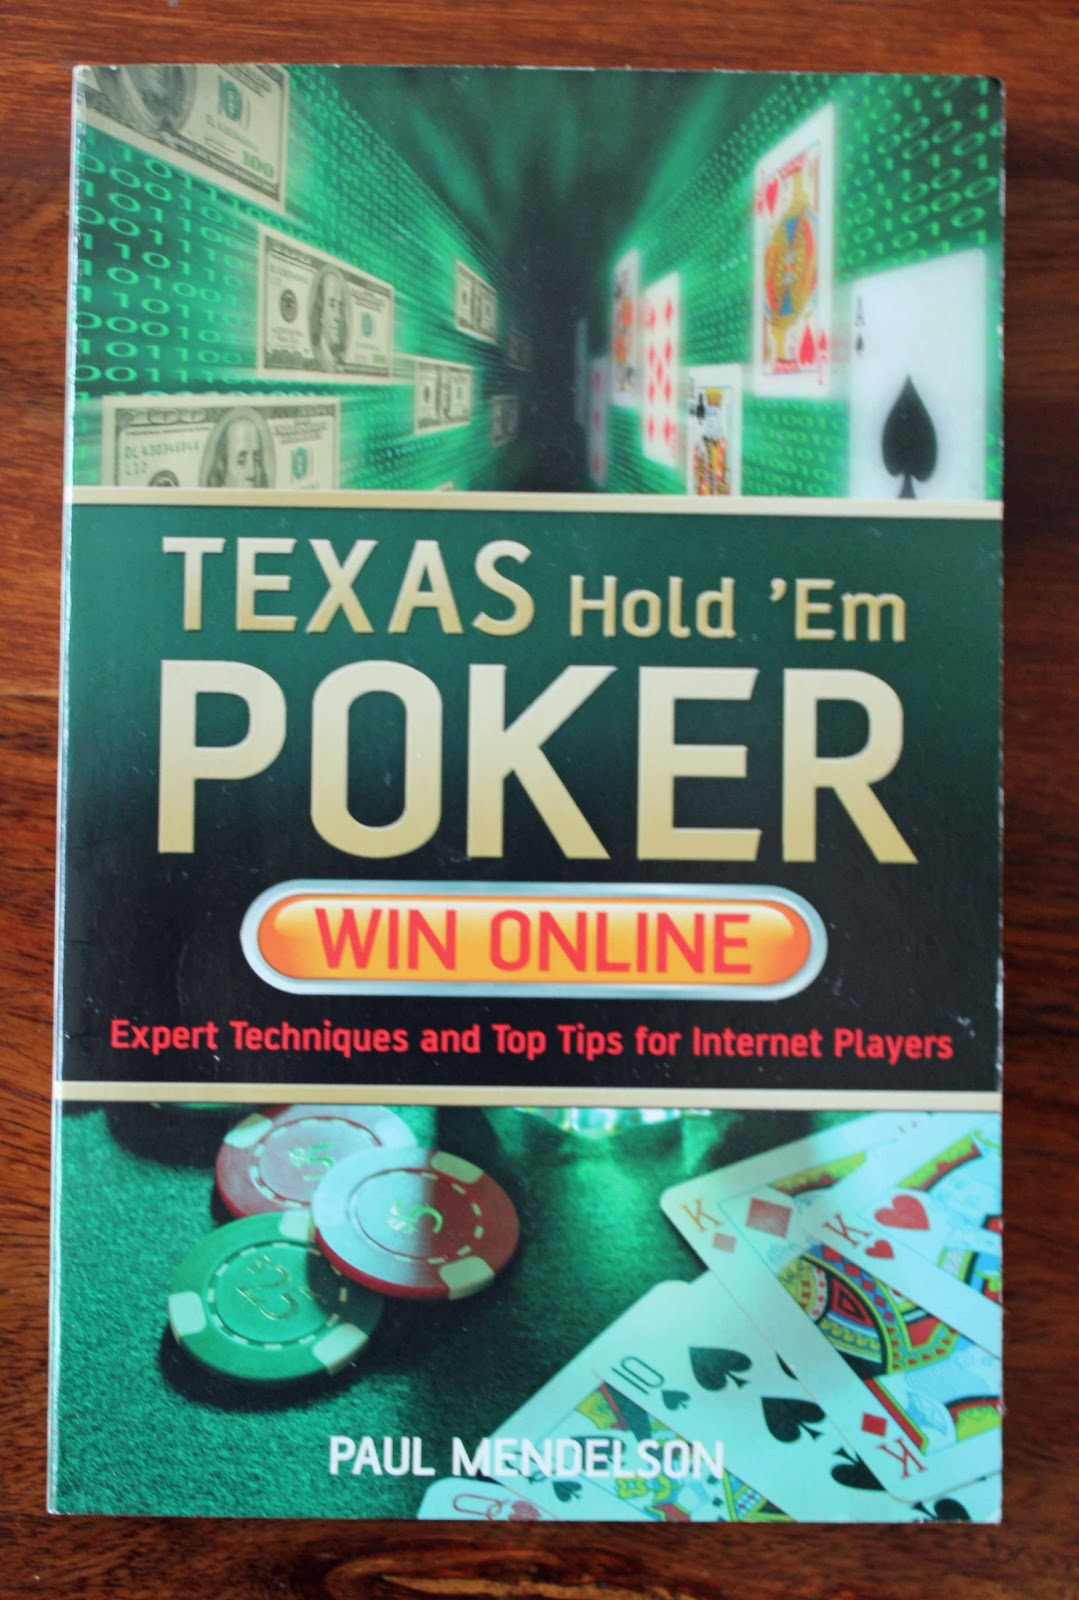 How to win a texas hold'em poker tournament